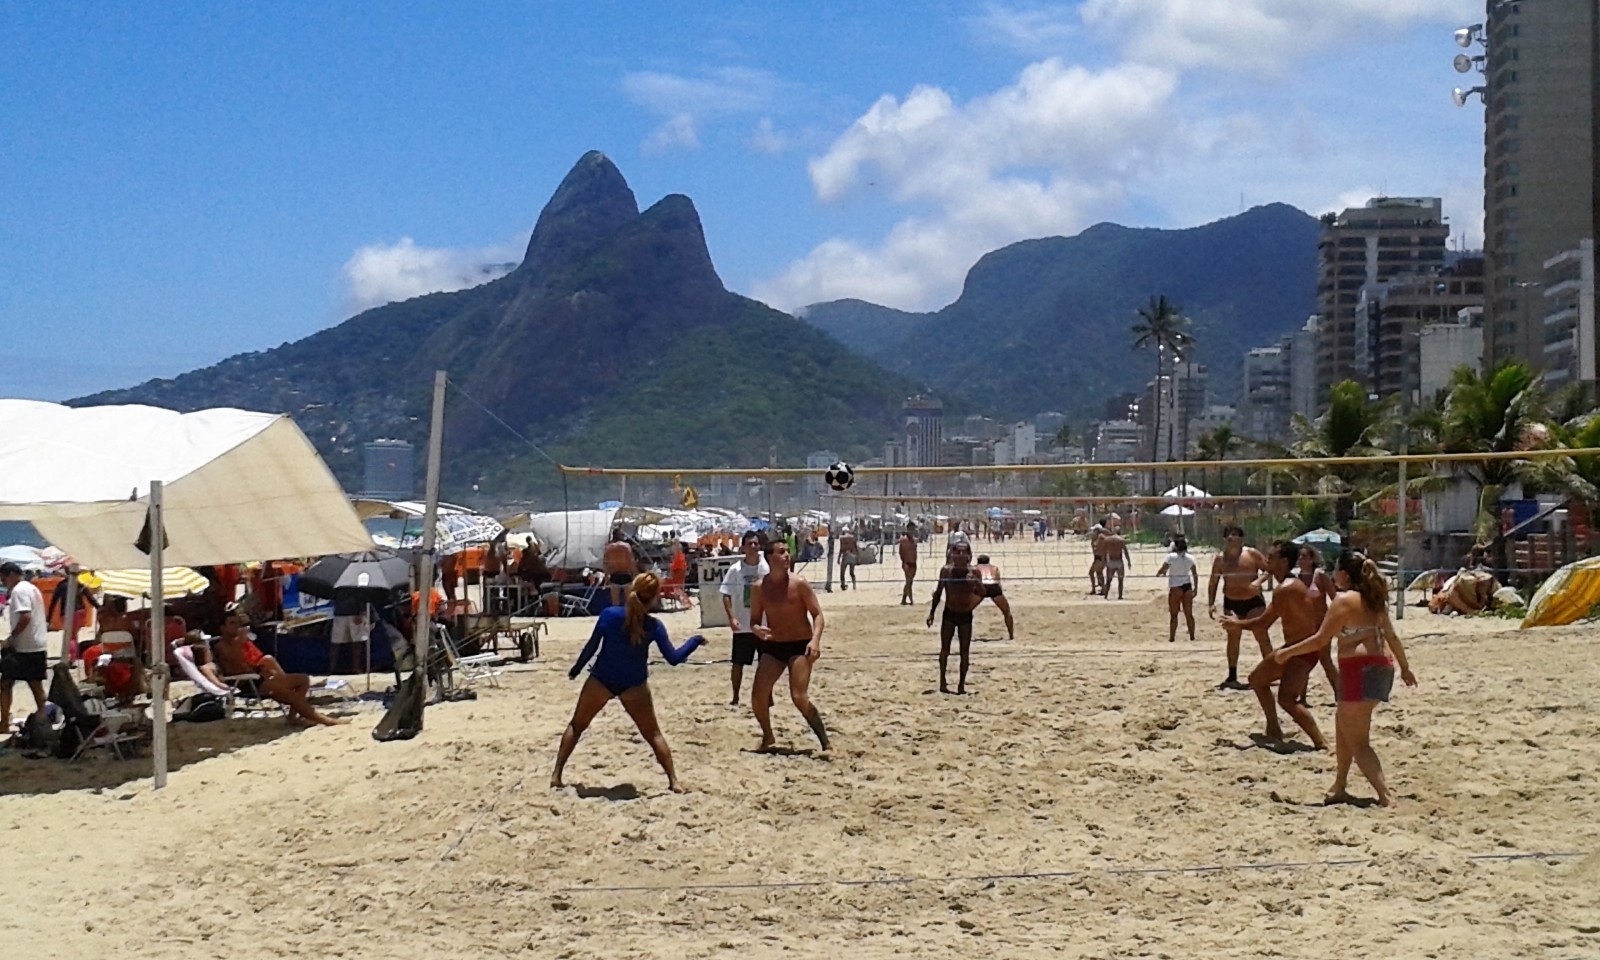 The best local things to do in Rio de Janeiro